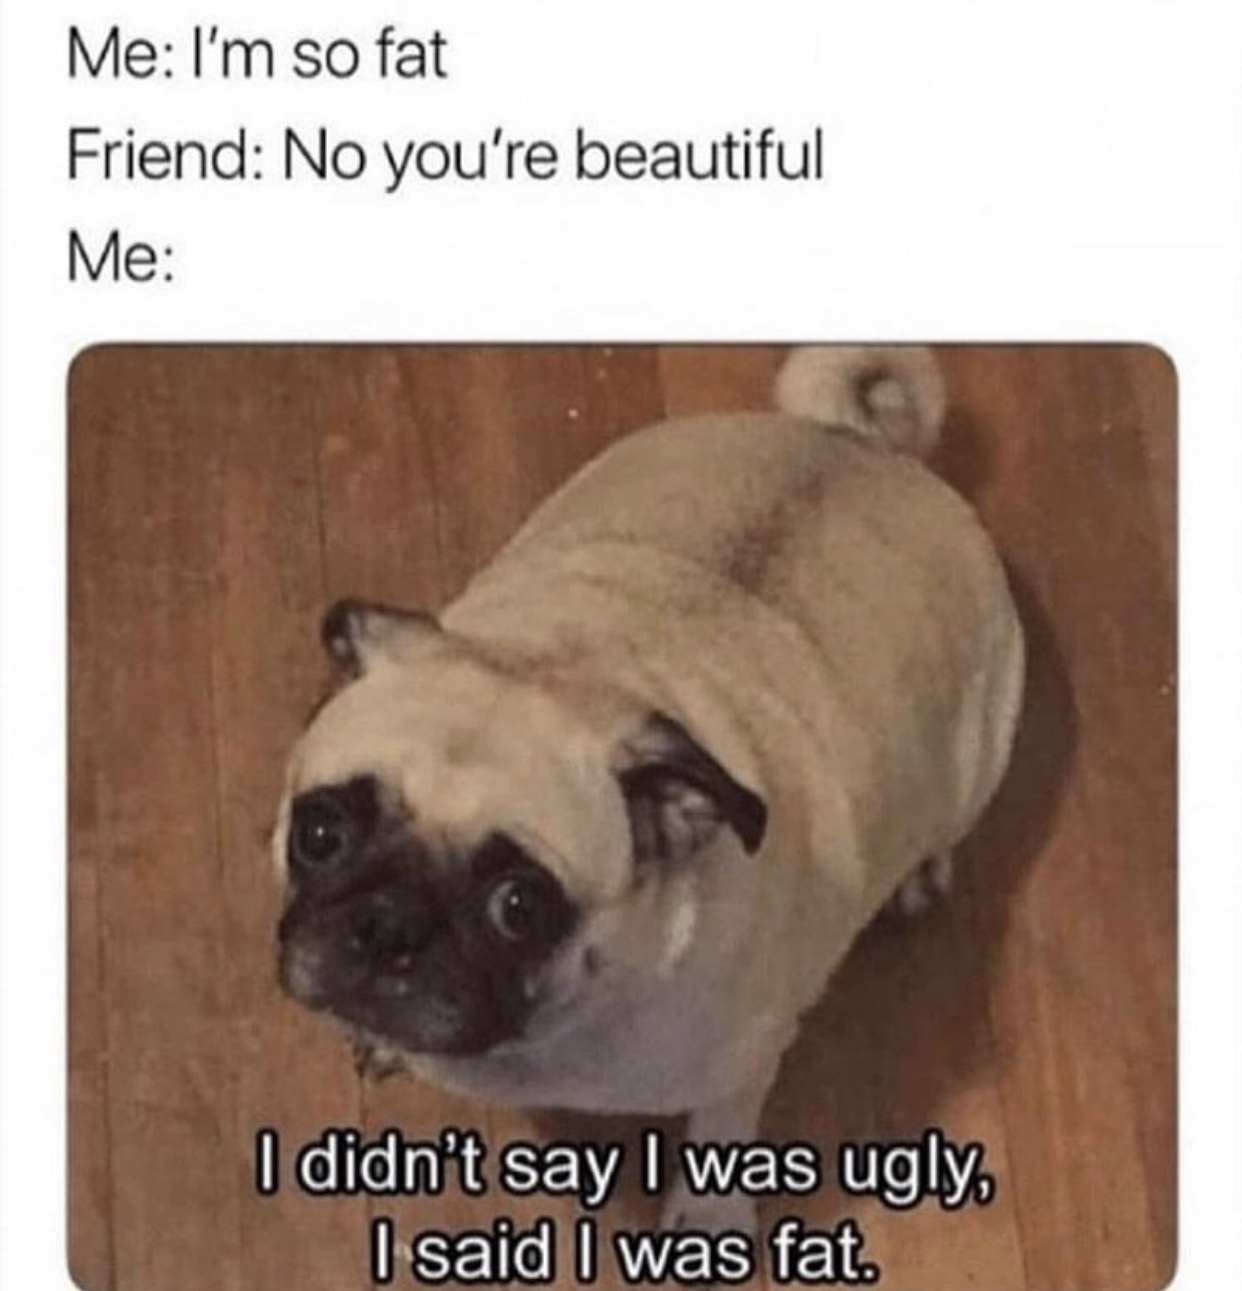 Fat or ugly? - meme